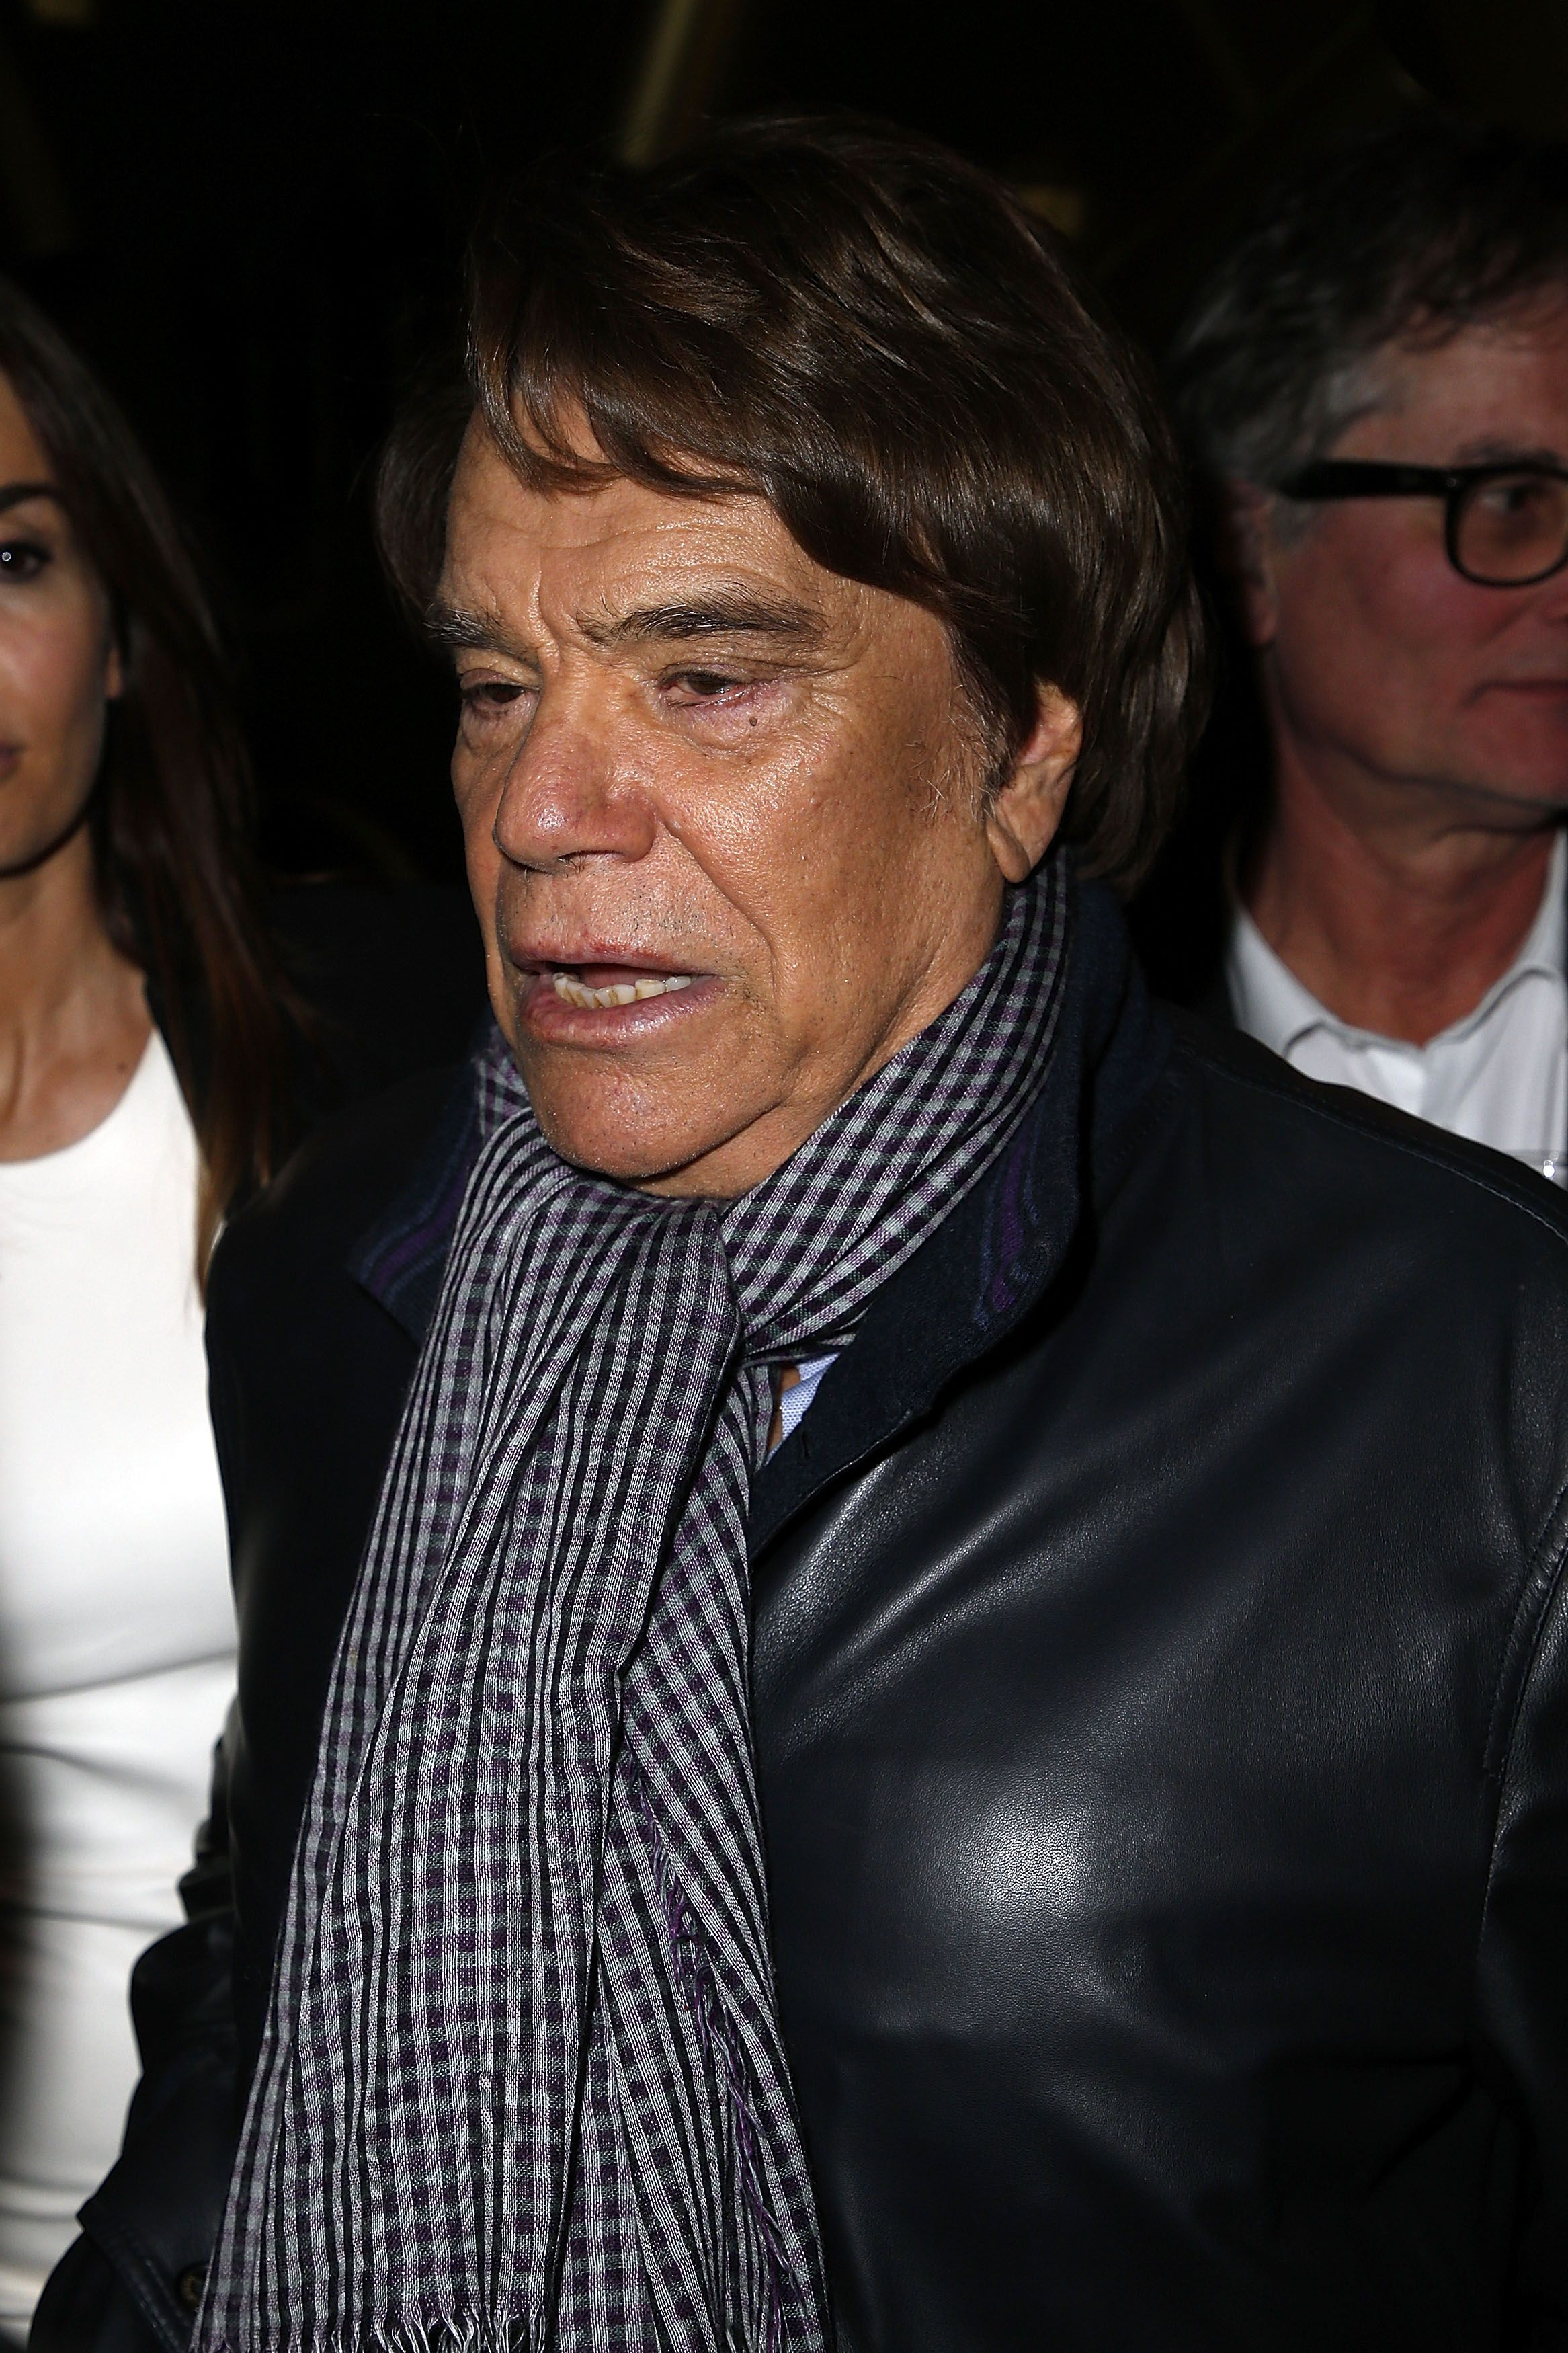 Bernard Tapie au VIP Room Theatre le 6 décembre 2016 à Paris, France. | Photo : Getty Images